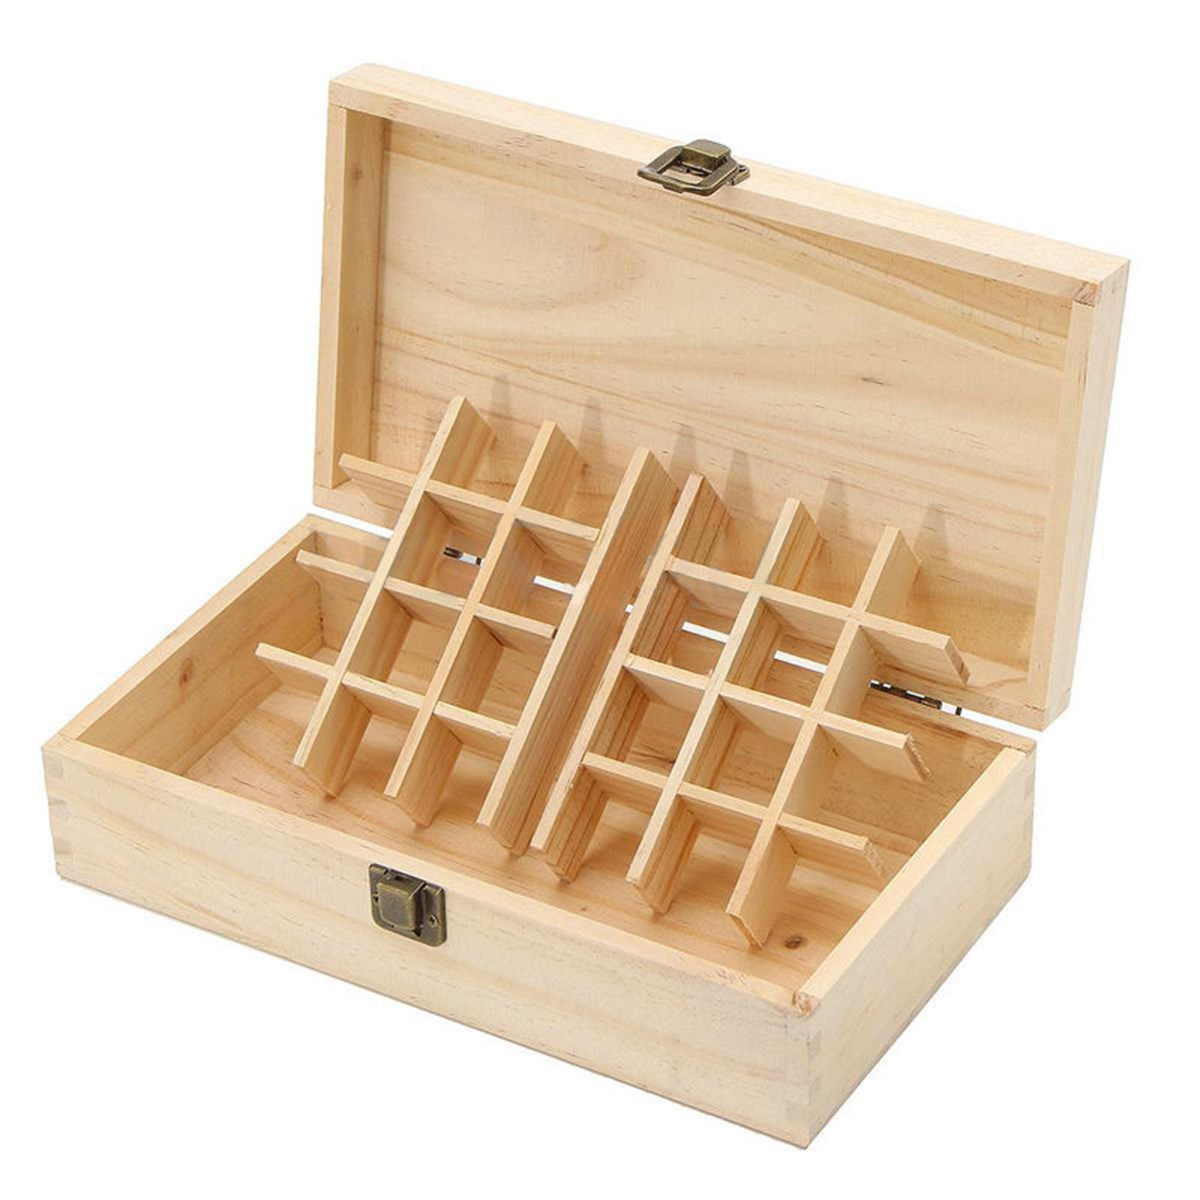 24 Slots Wooden Essential Oil Storage Box Case Holder Container Organizer Aromatherapy Home Decor Box Organization